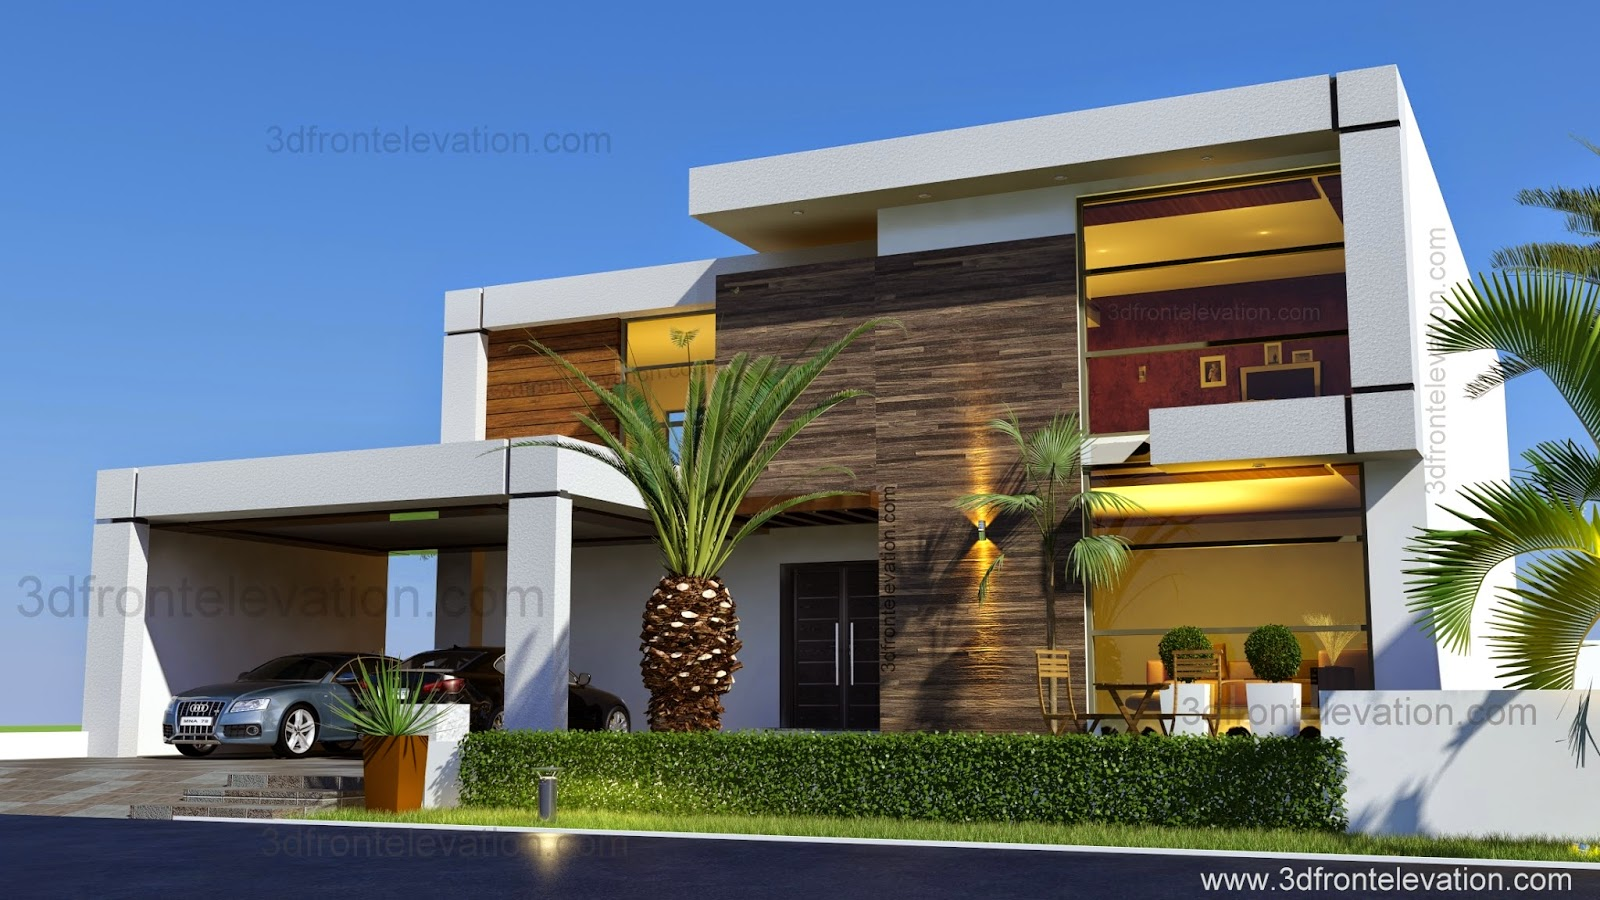 Home elevation wallpaper wallpaper home for 3d wallpaper for home in bangalore